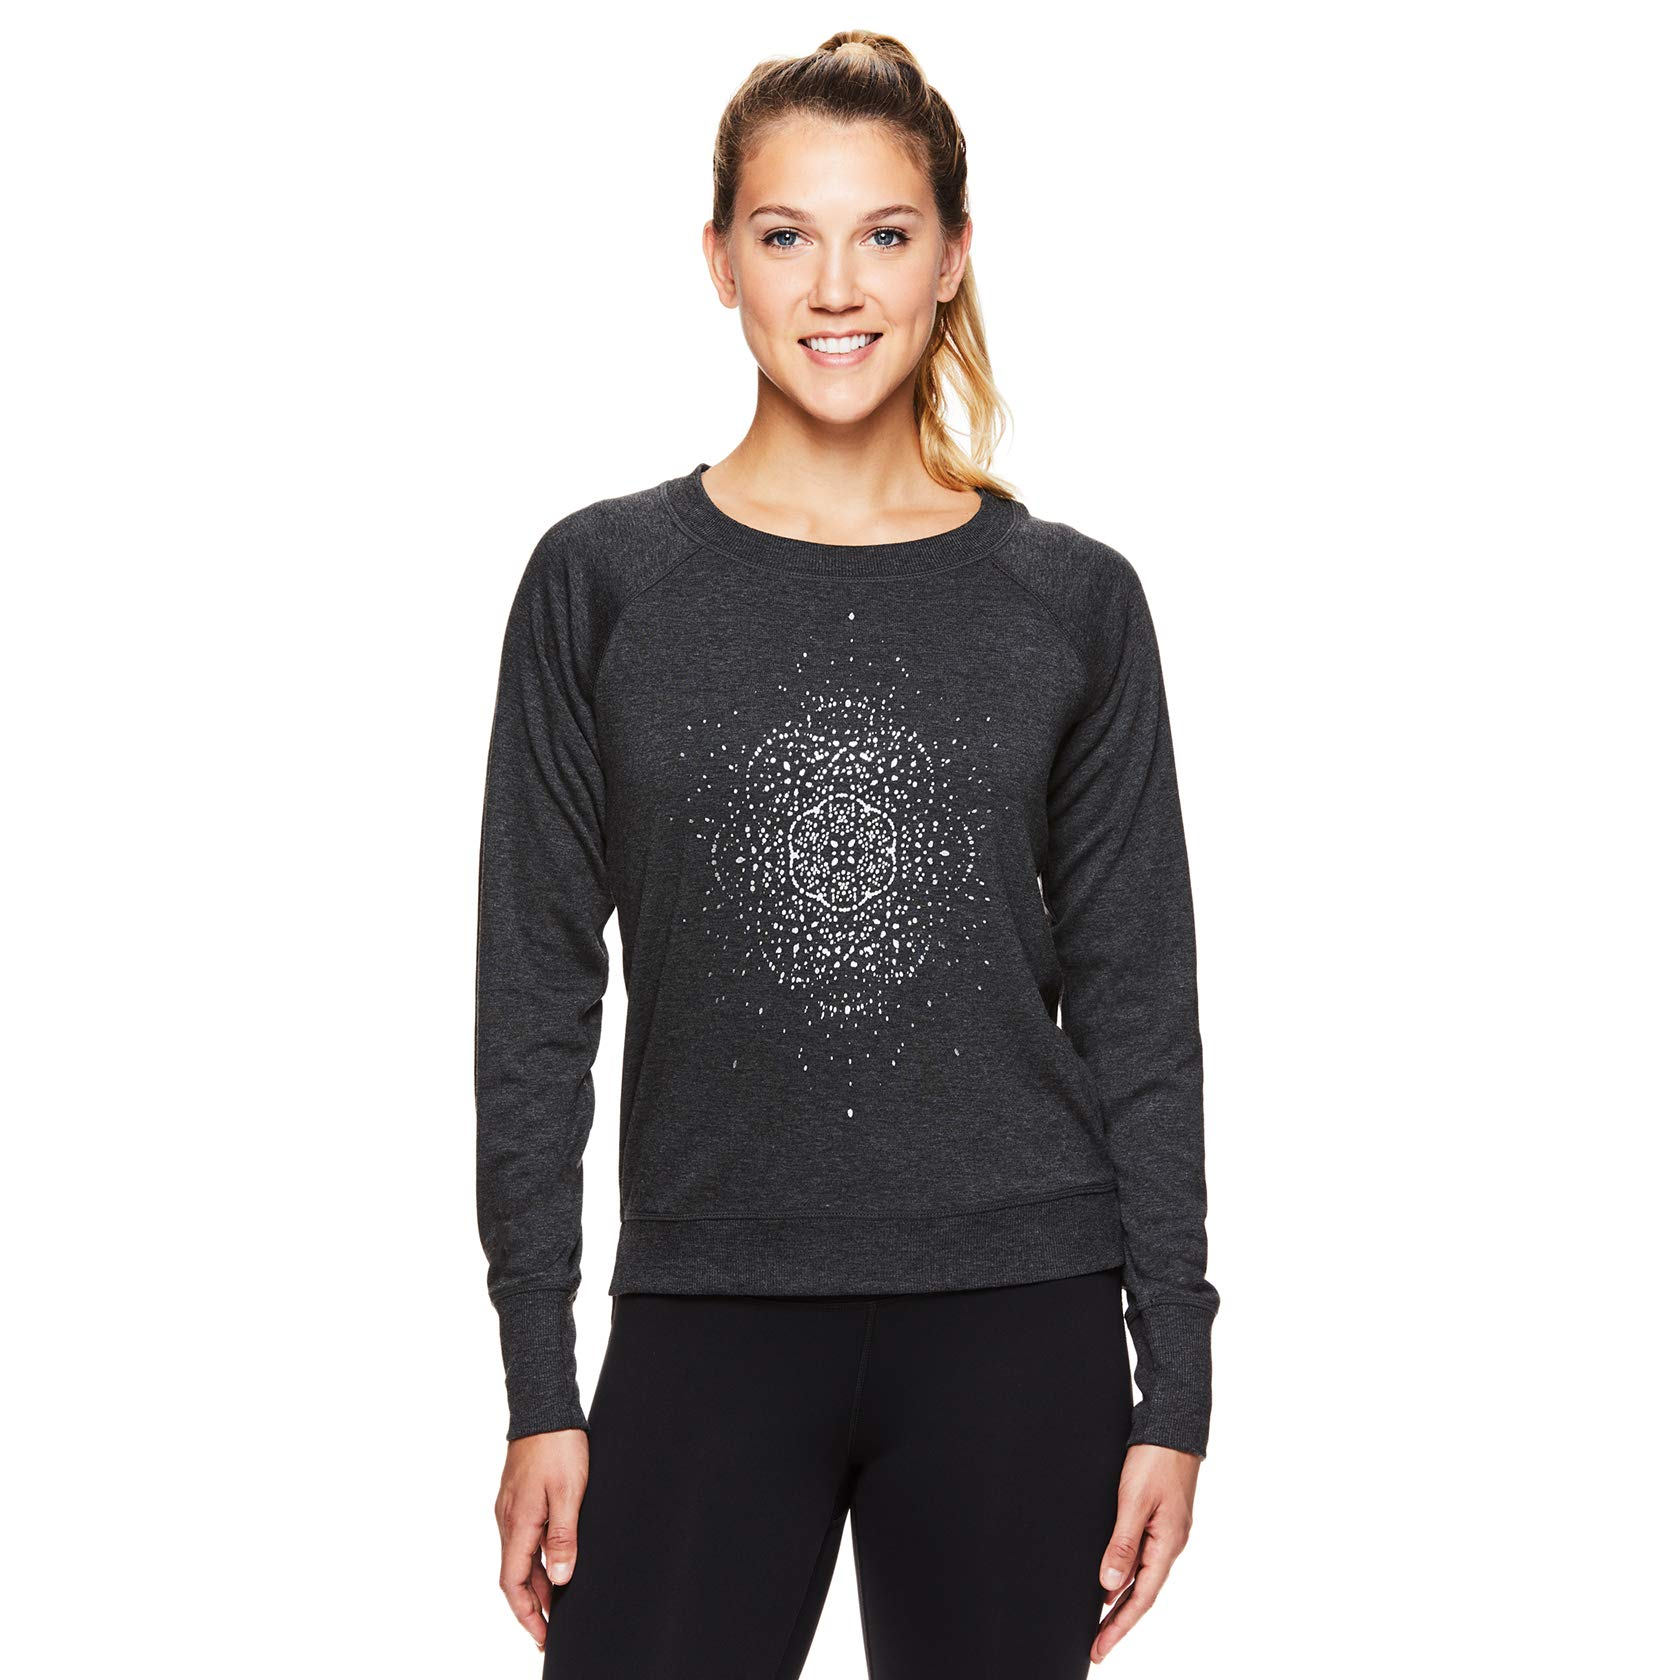 Gaiam Women's Pullover Yoga Sweater - Long Sleeve Graphic Activewear Shirt - Calla Charcoal Heather, X-Large by Gaiam